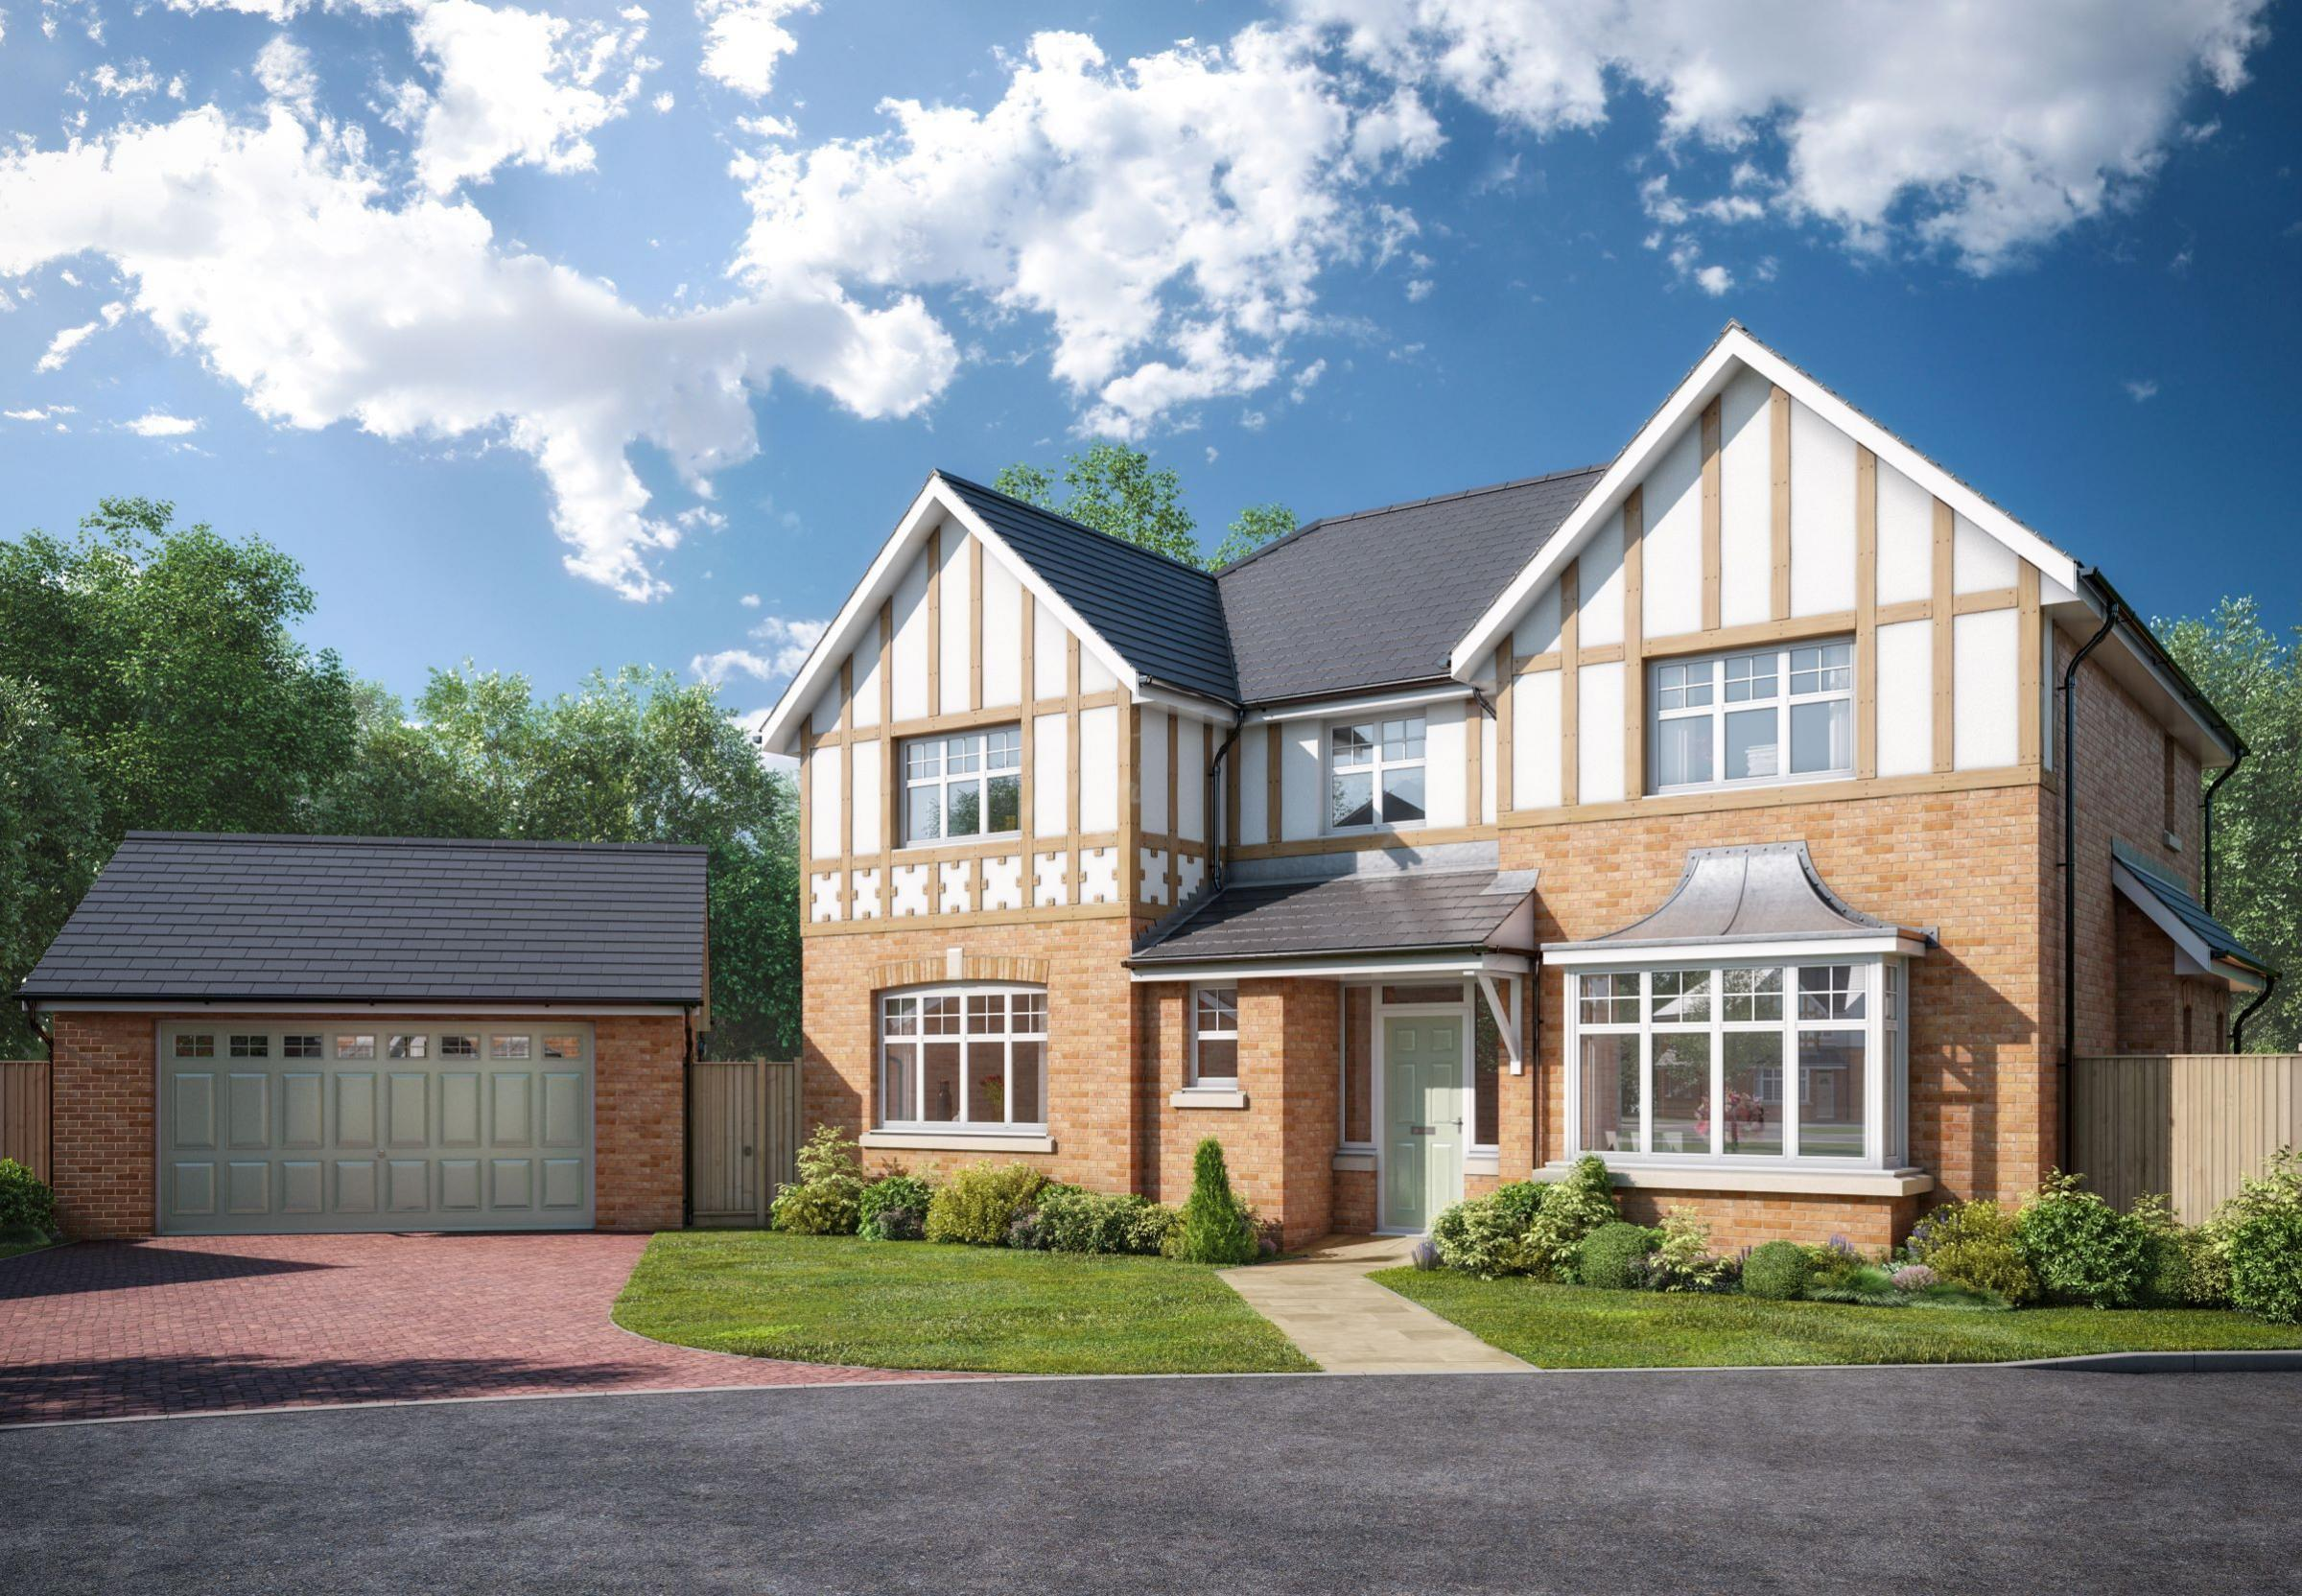 •	An artist's impression of The Knightsbridge 2 house type, one of a range of just twelve detached homes being built by Jones Homes at Springfield Gate in Eccleston